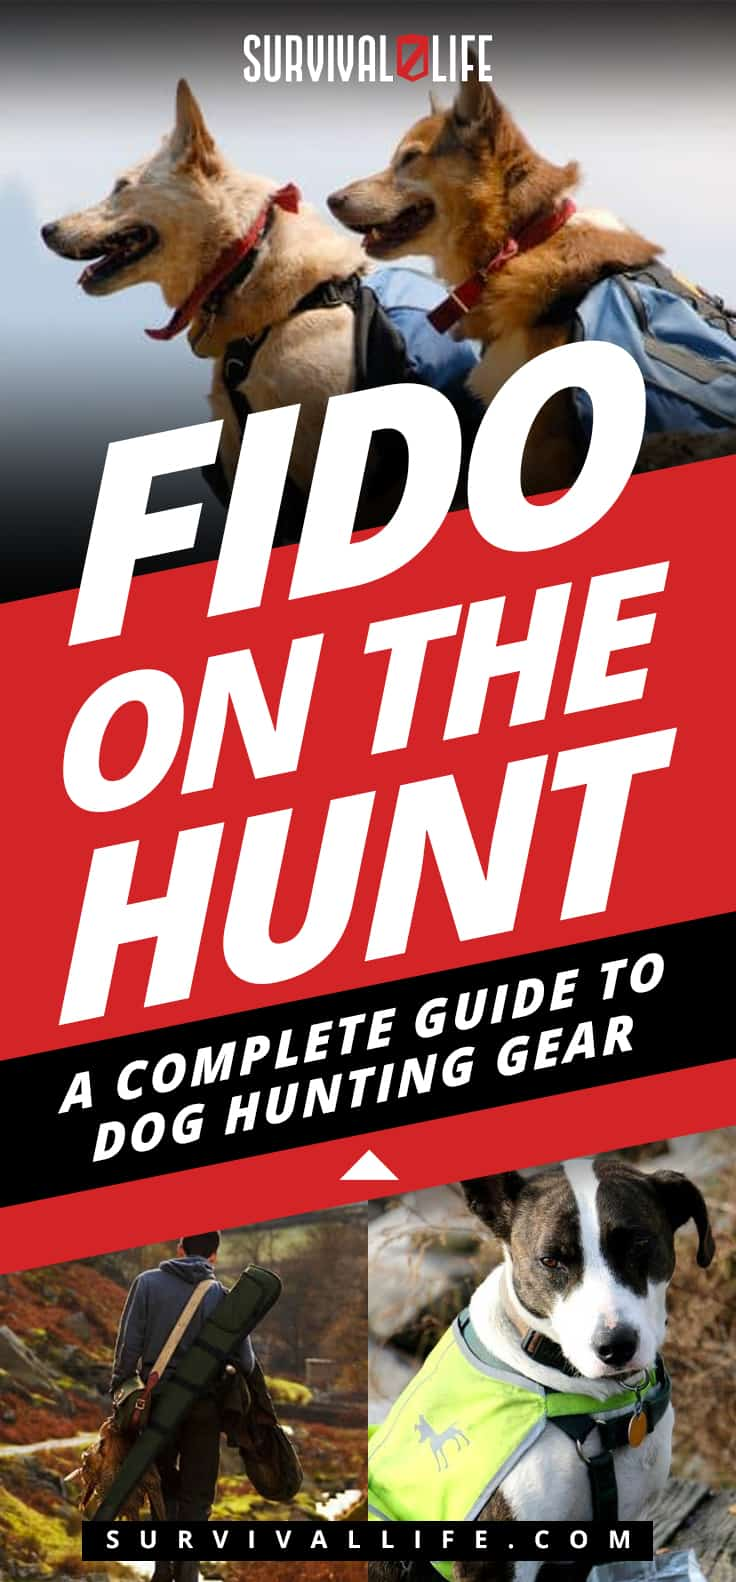 Fido On The Hunt: A Complete Guide To Dog Hunting Gear | https://survivallife.com/fido-on-the-hunt-a-complete-guide-to-dog-hunting-gear/